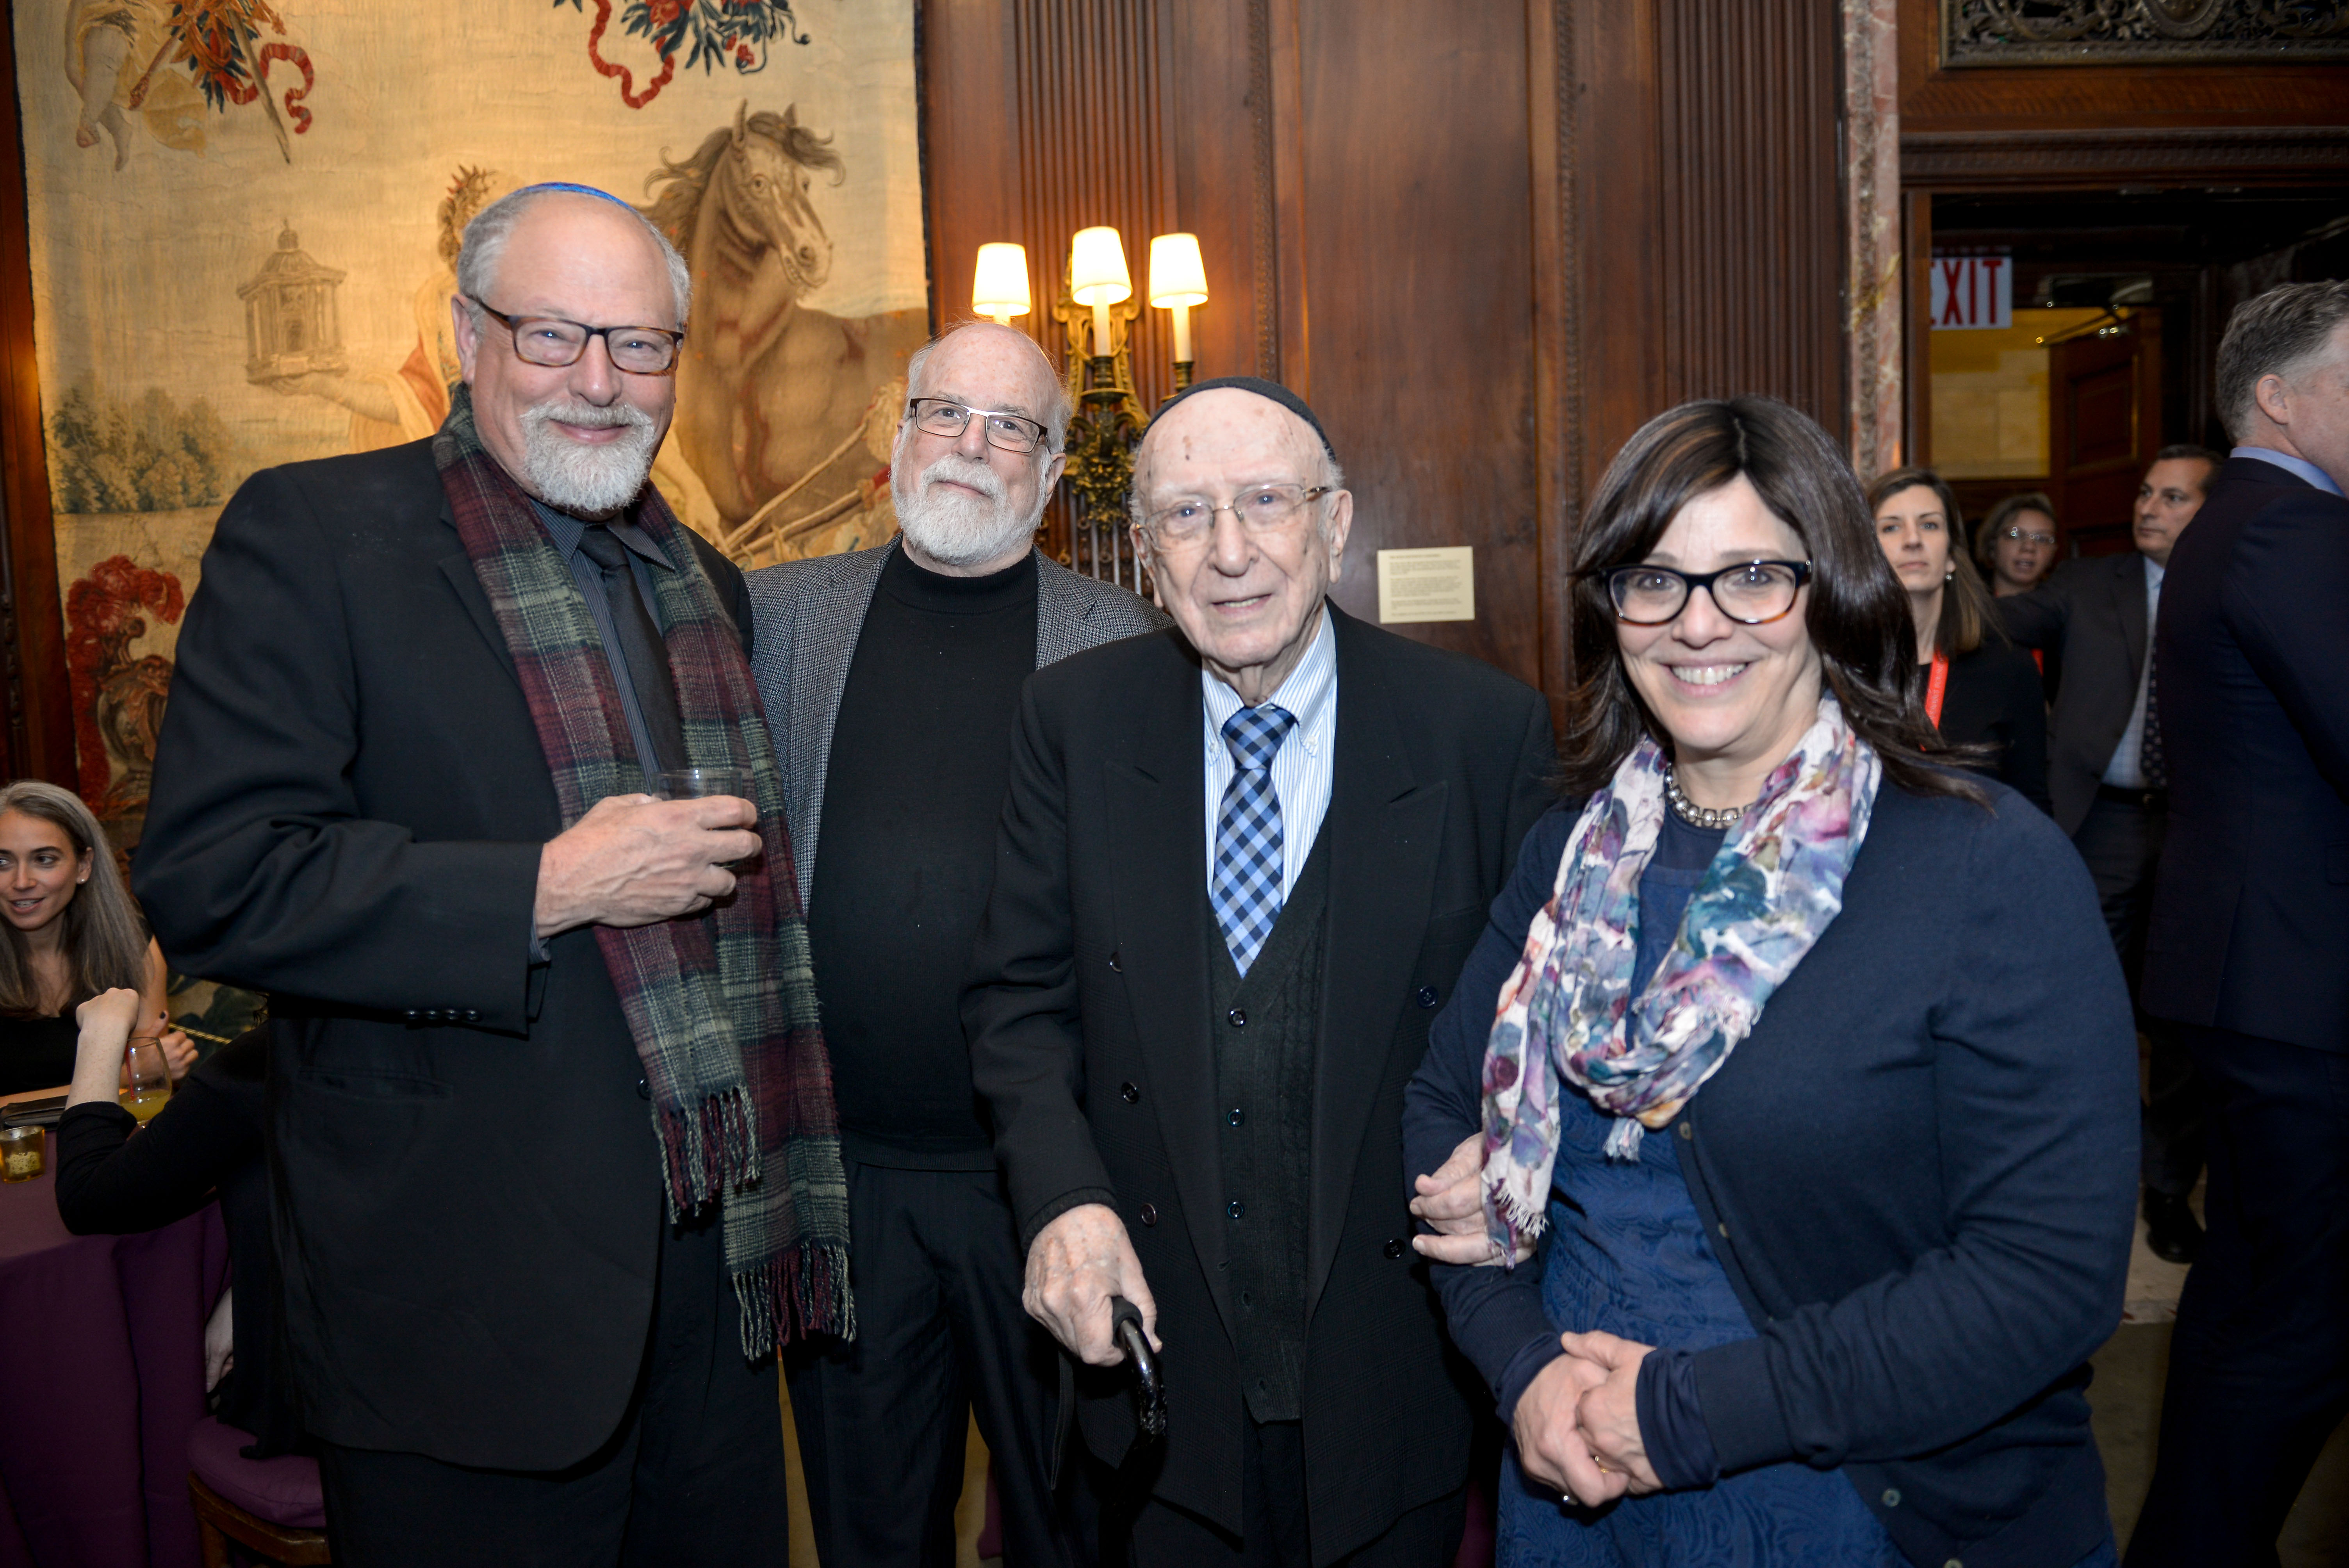 From left: 2002 Covenant Award Recipient Rabbi Peretz Wolf-Prusan, 2005 Covenant Award Recipient Jody Hirsh, 1992 Covenant Award Recipient Rabbi Israel David Eliach, and Smadar Rosensweig.